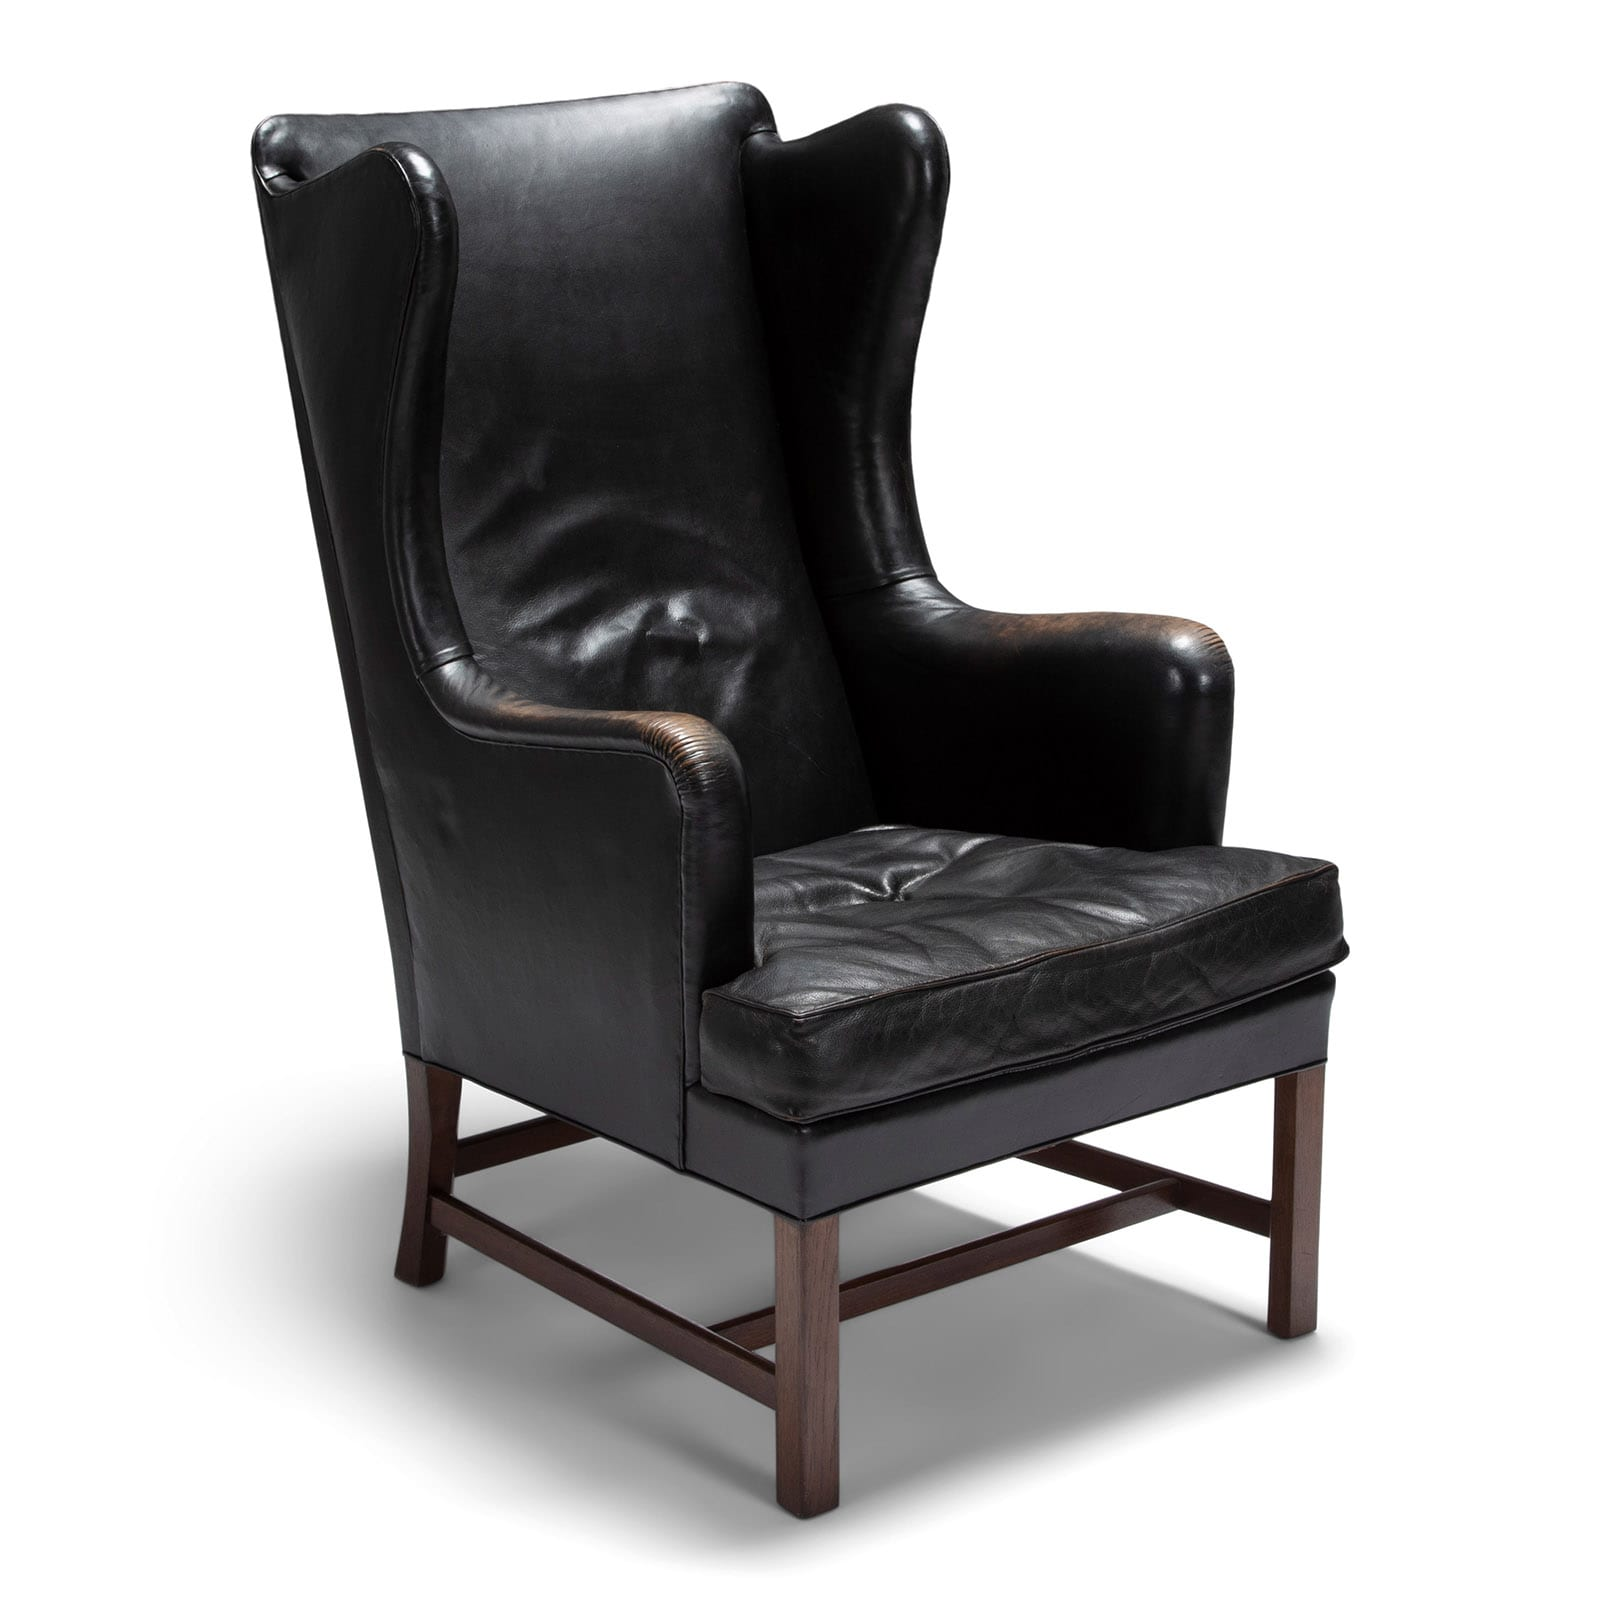 A wingback chair